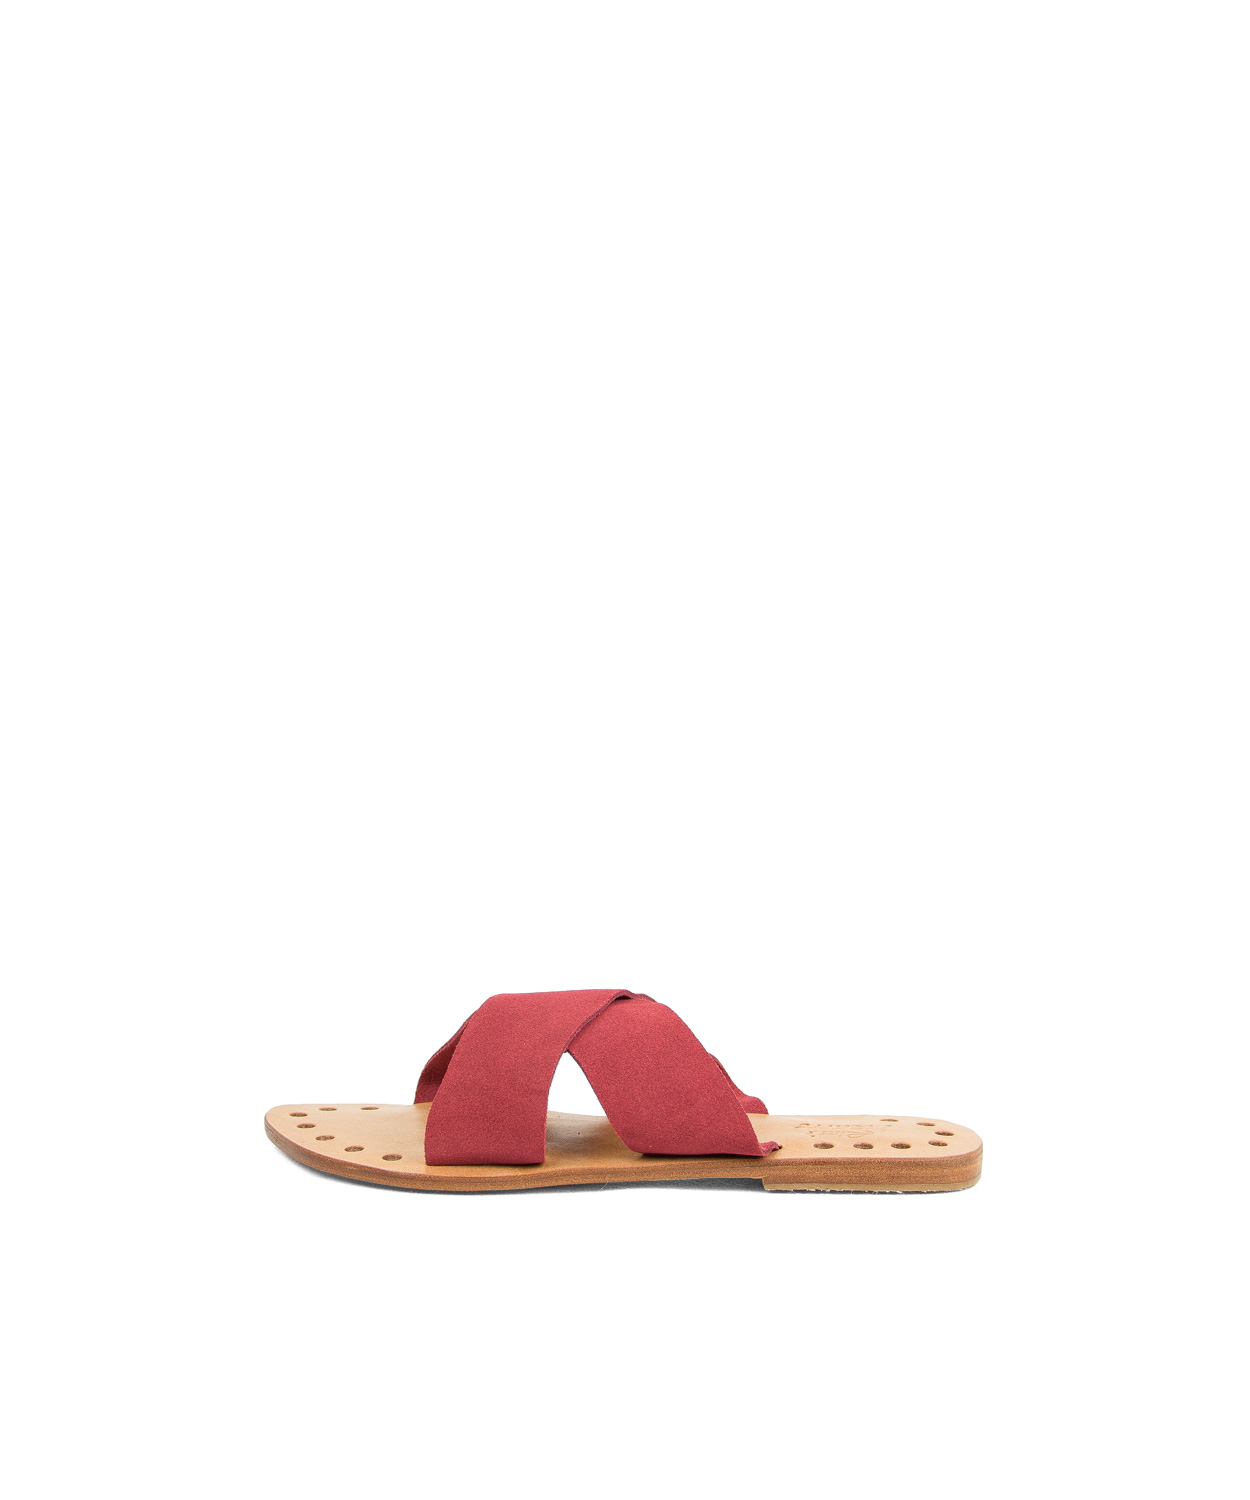 Sandals X, Coral Red